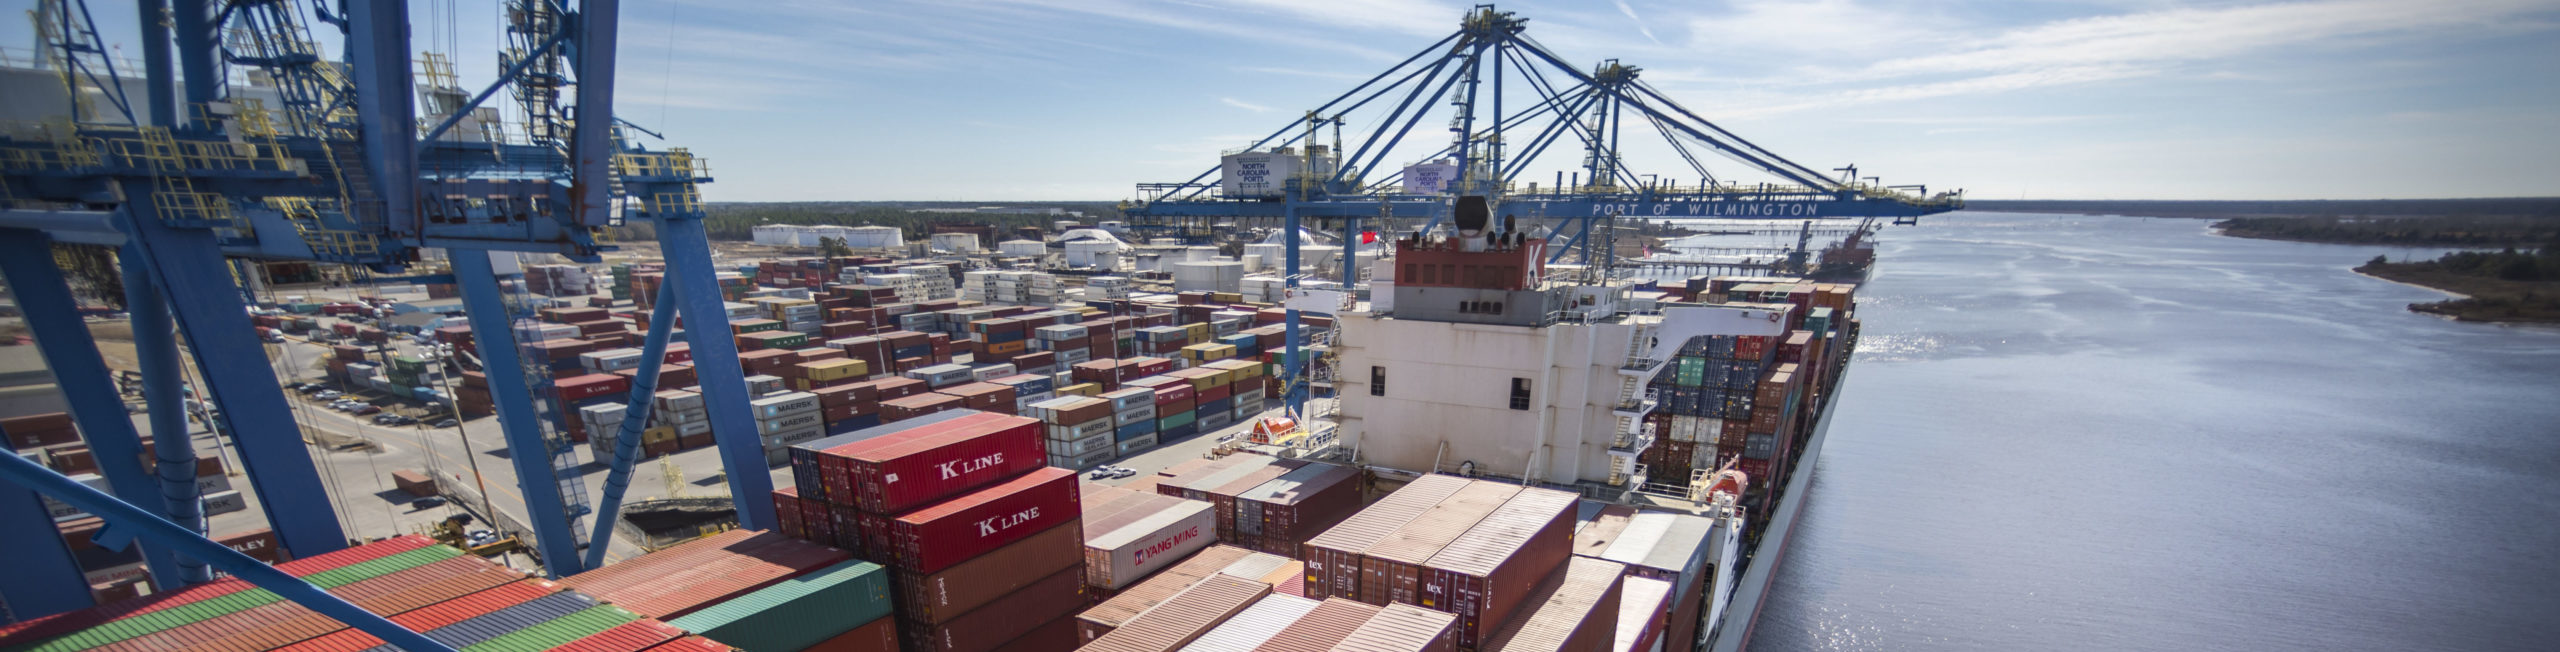 Aerial of freight container vessel in Port of Wilmington